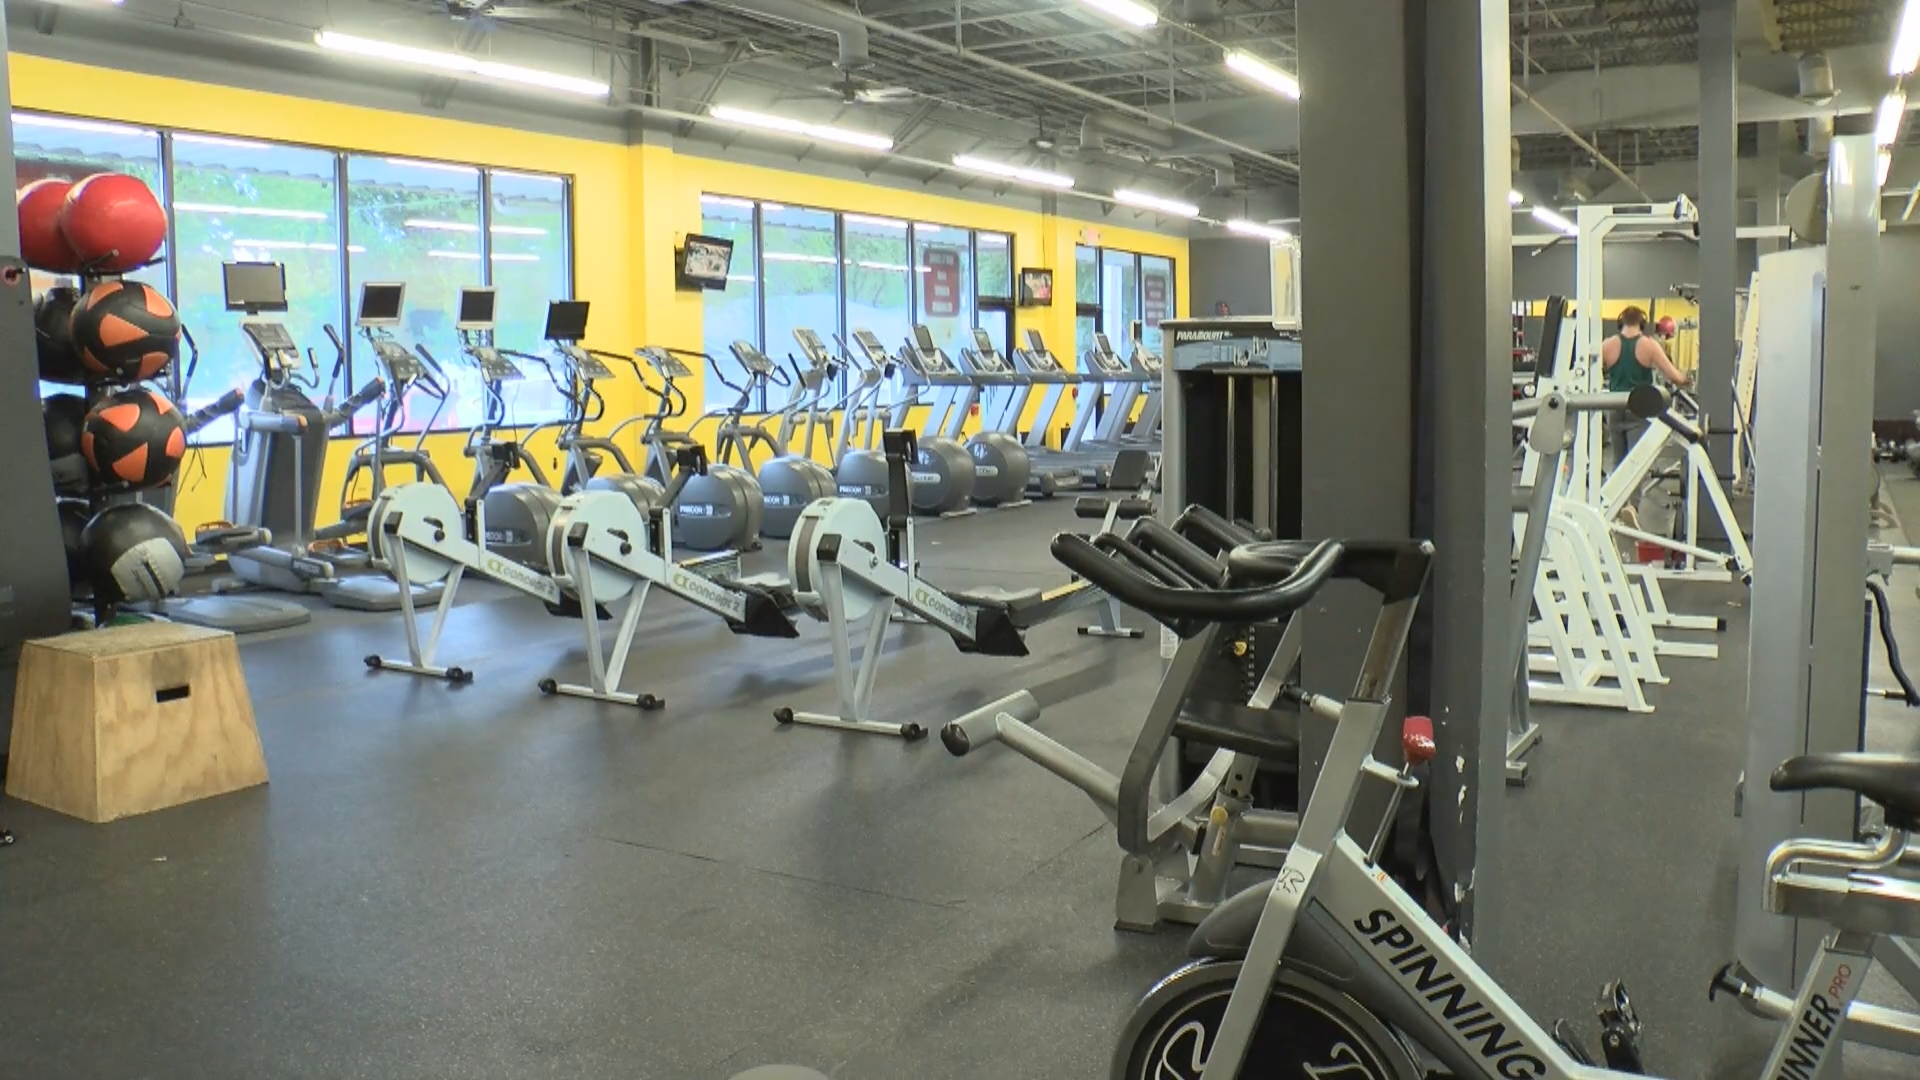 Sioux City Gyms Begin Reopening Siouxlandproud Sioux City Ia News Weather And Sports